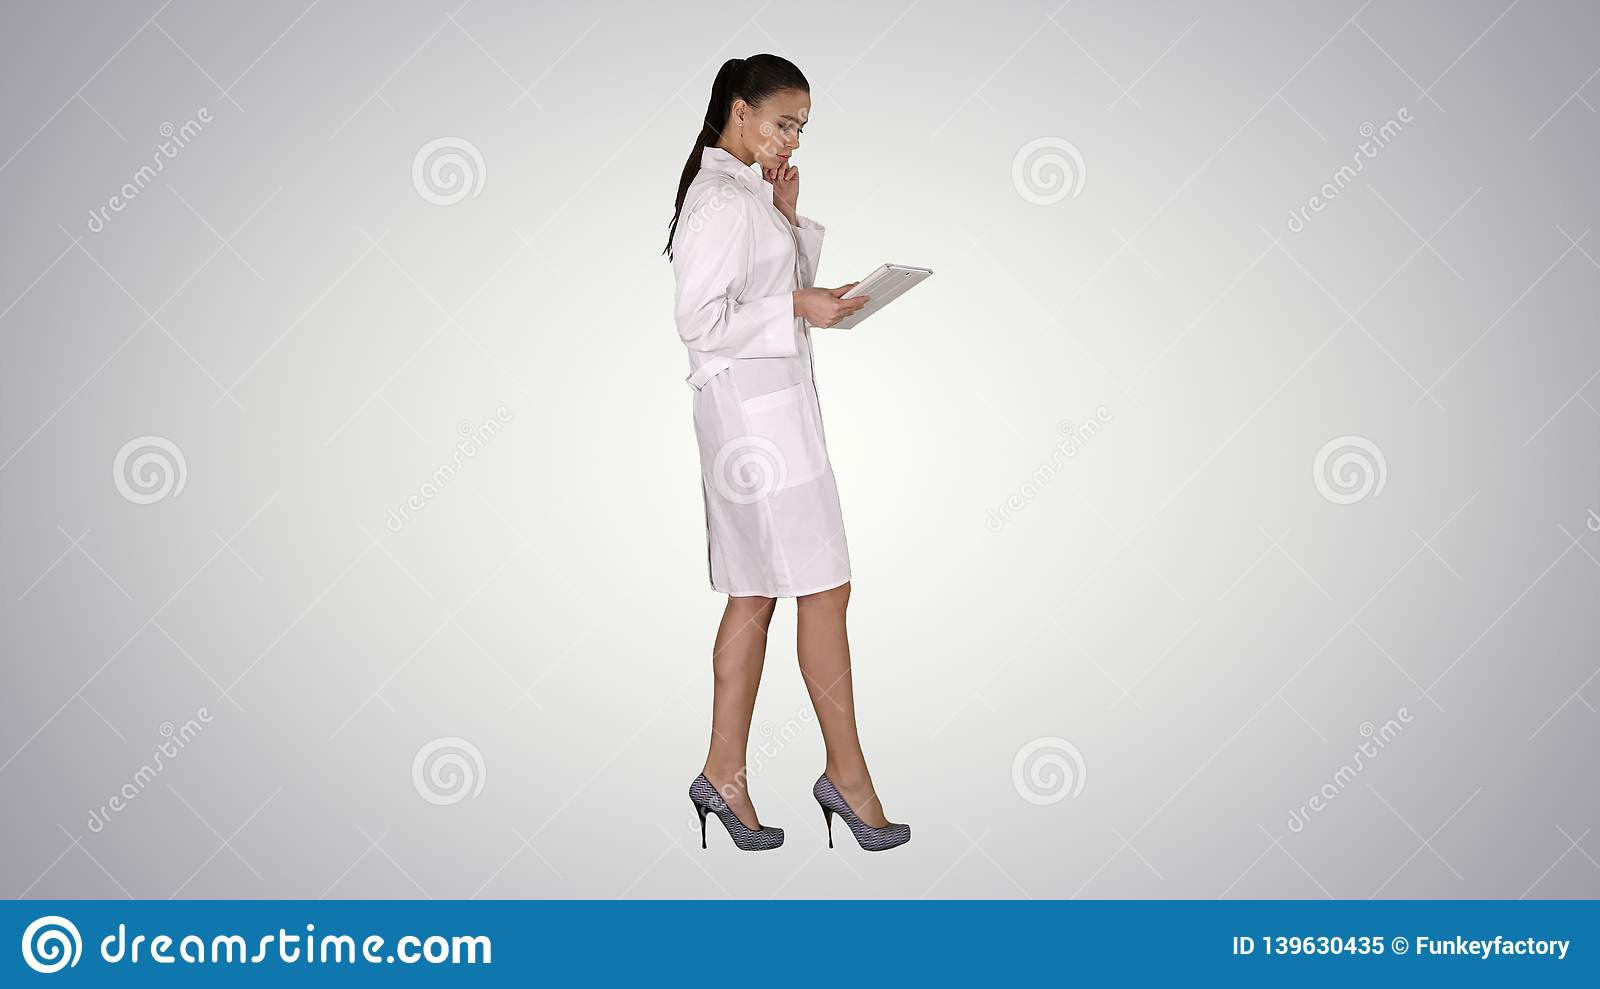 Woman doctor using tablet pc and walking on gradient background.